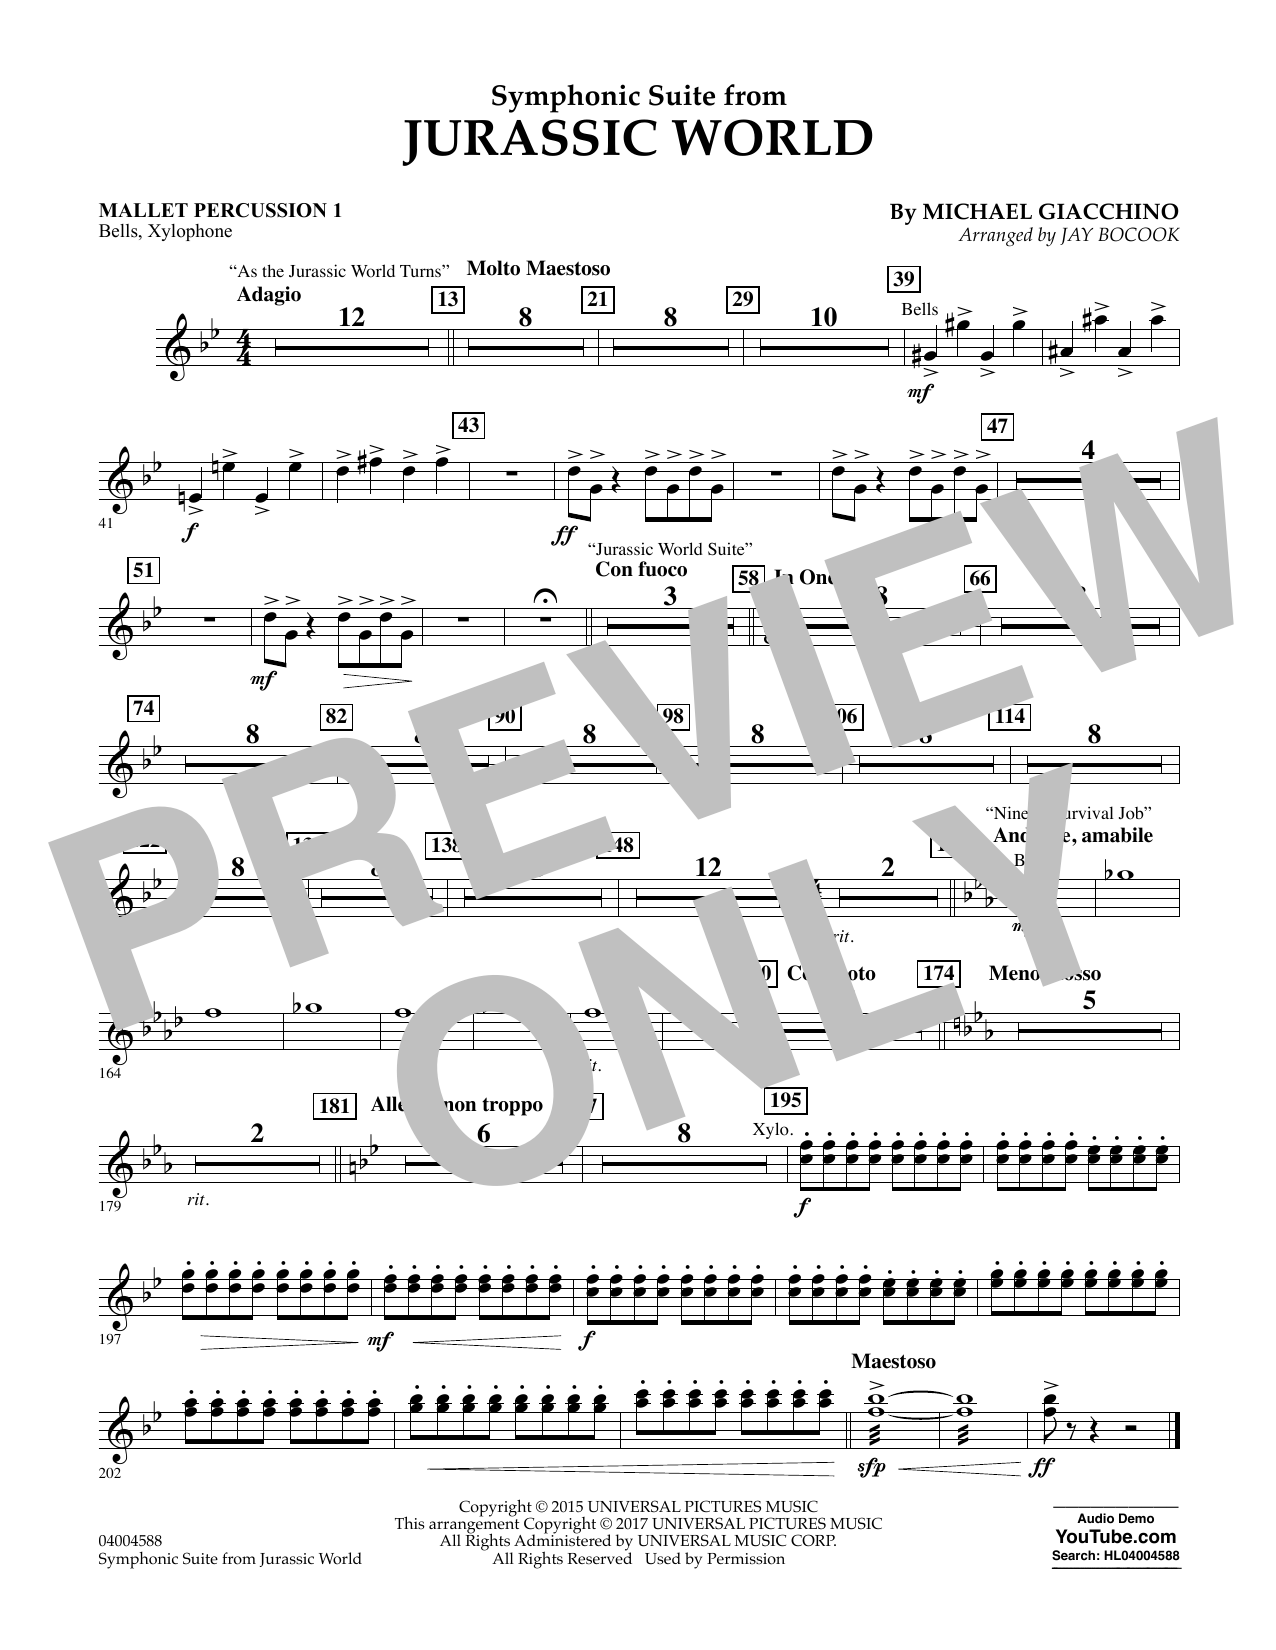 Jurassic World (Symphonic Suite) - Mallet Percussion 1 Sheet Music